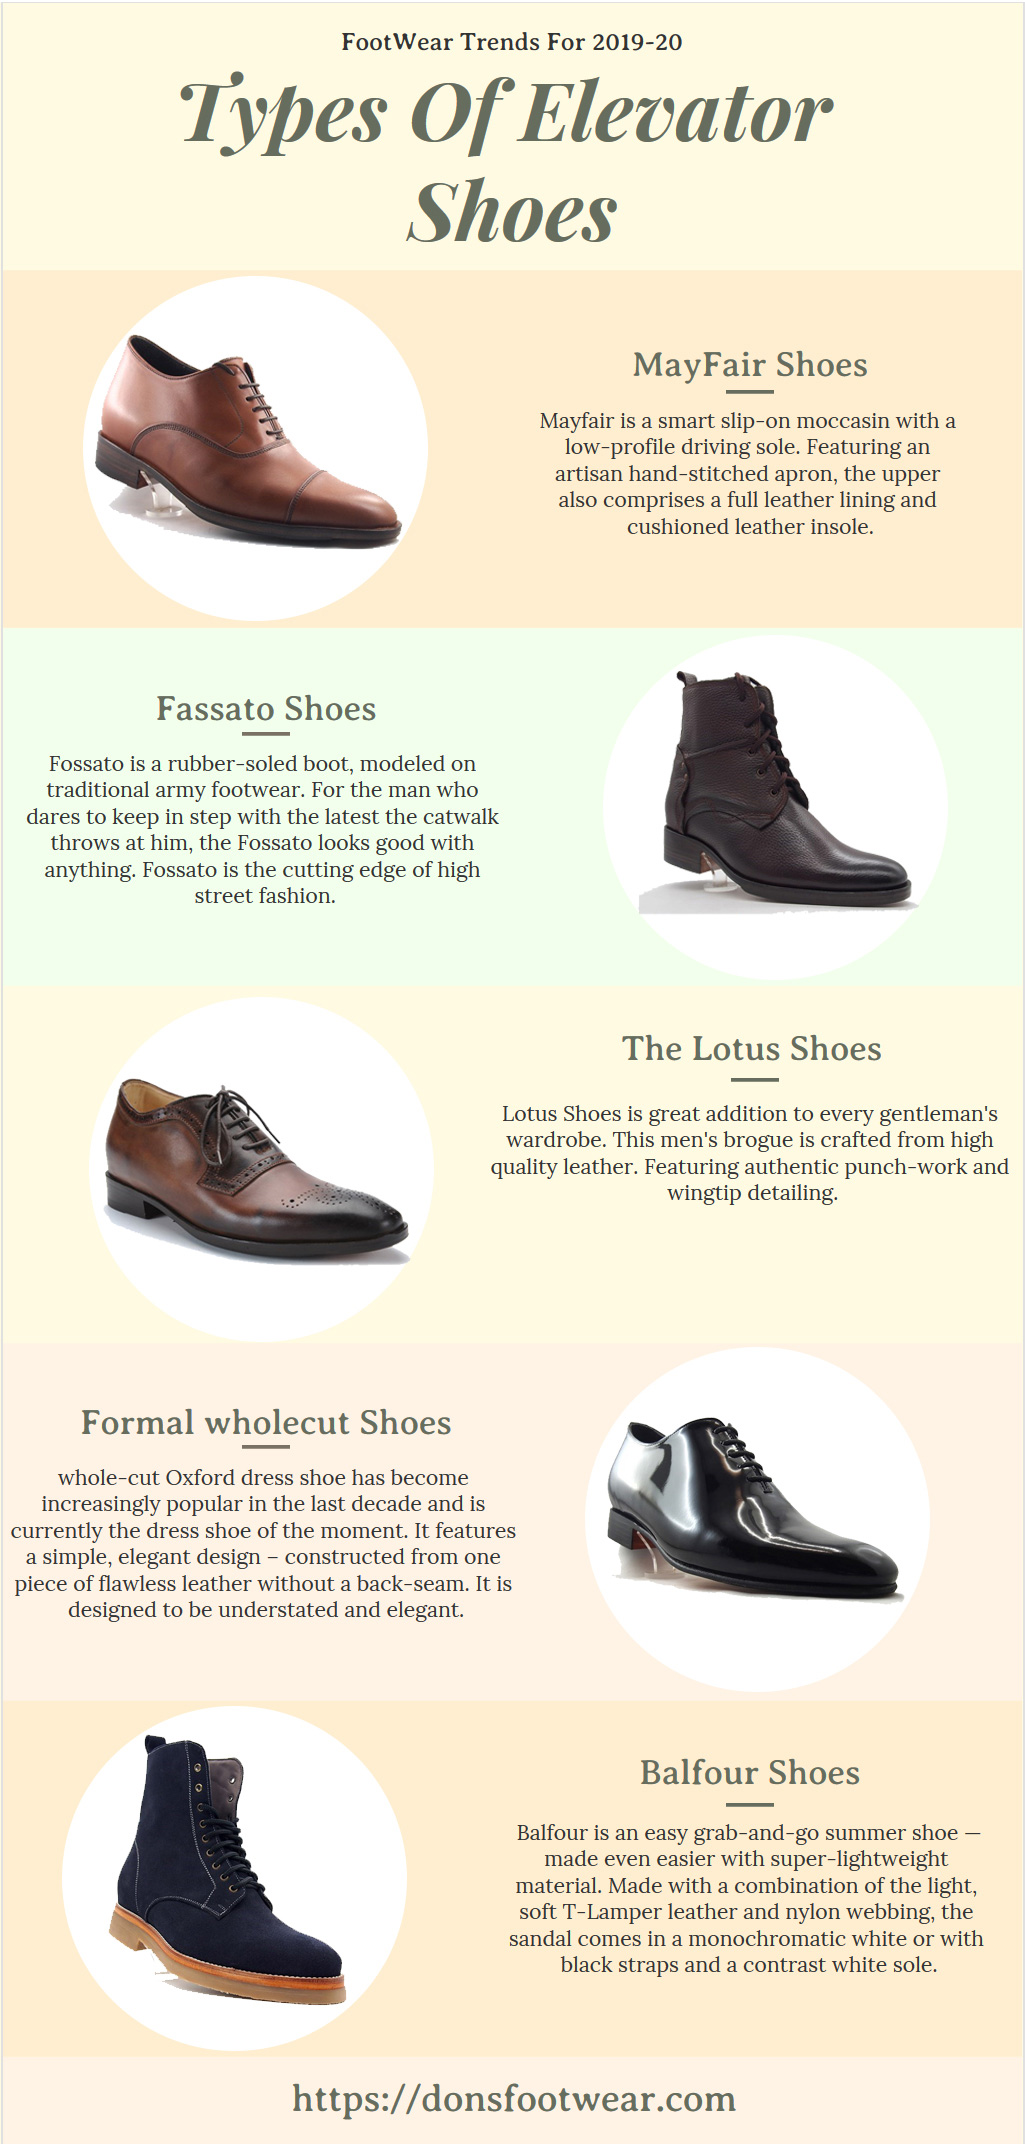 Types of Elevator Shoes